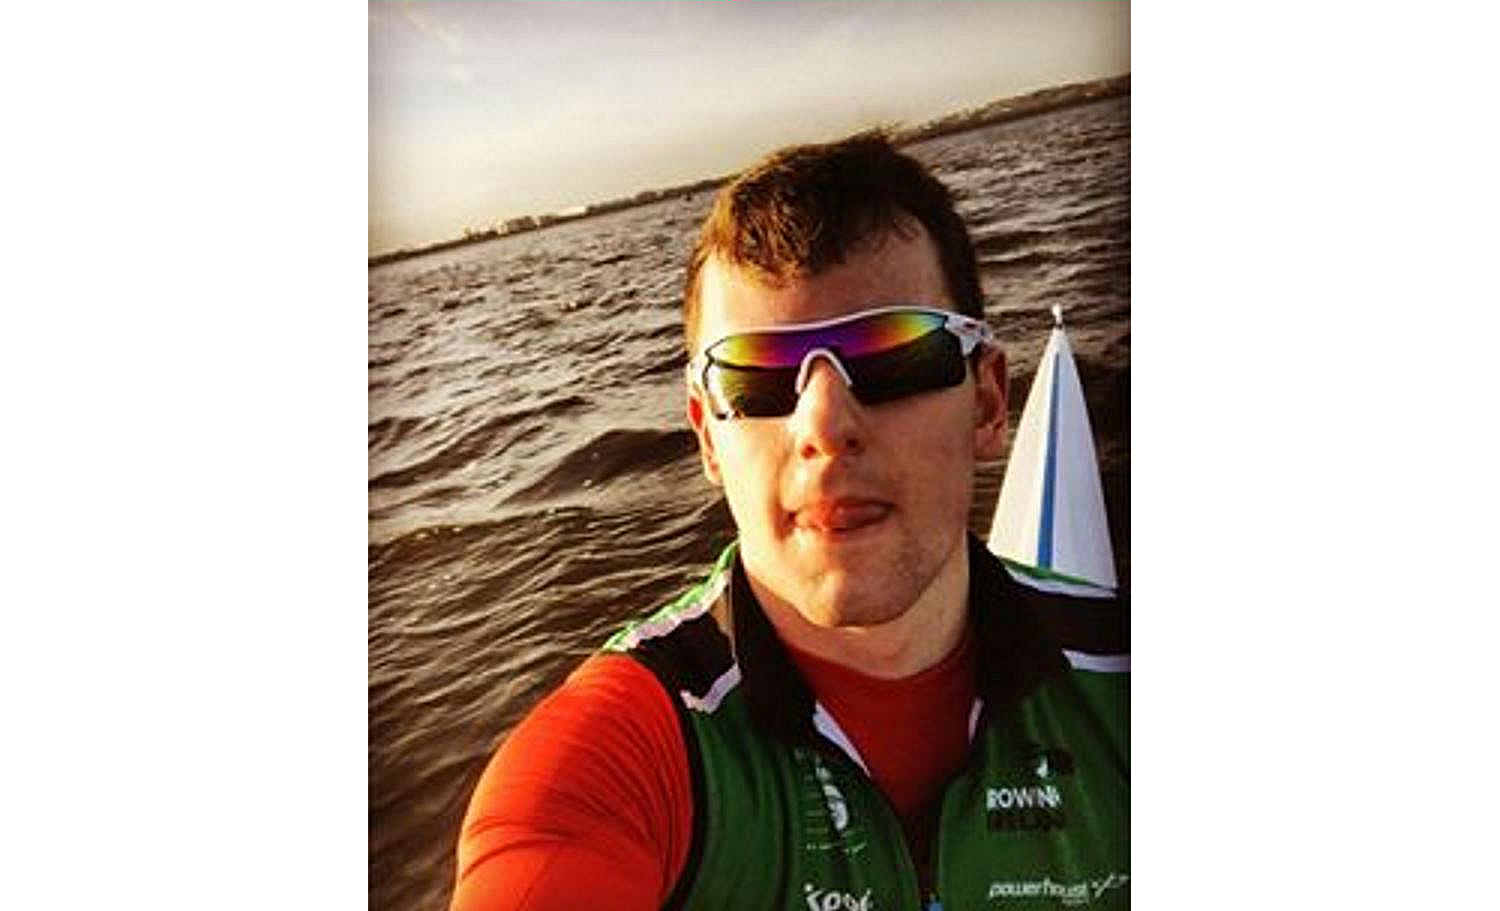 Quercus Scholar Jack Casey selected for U23 Rowing World Championships